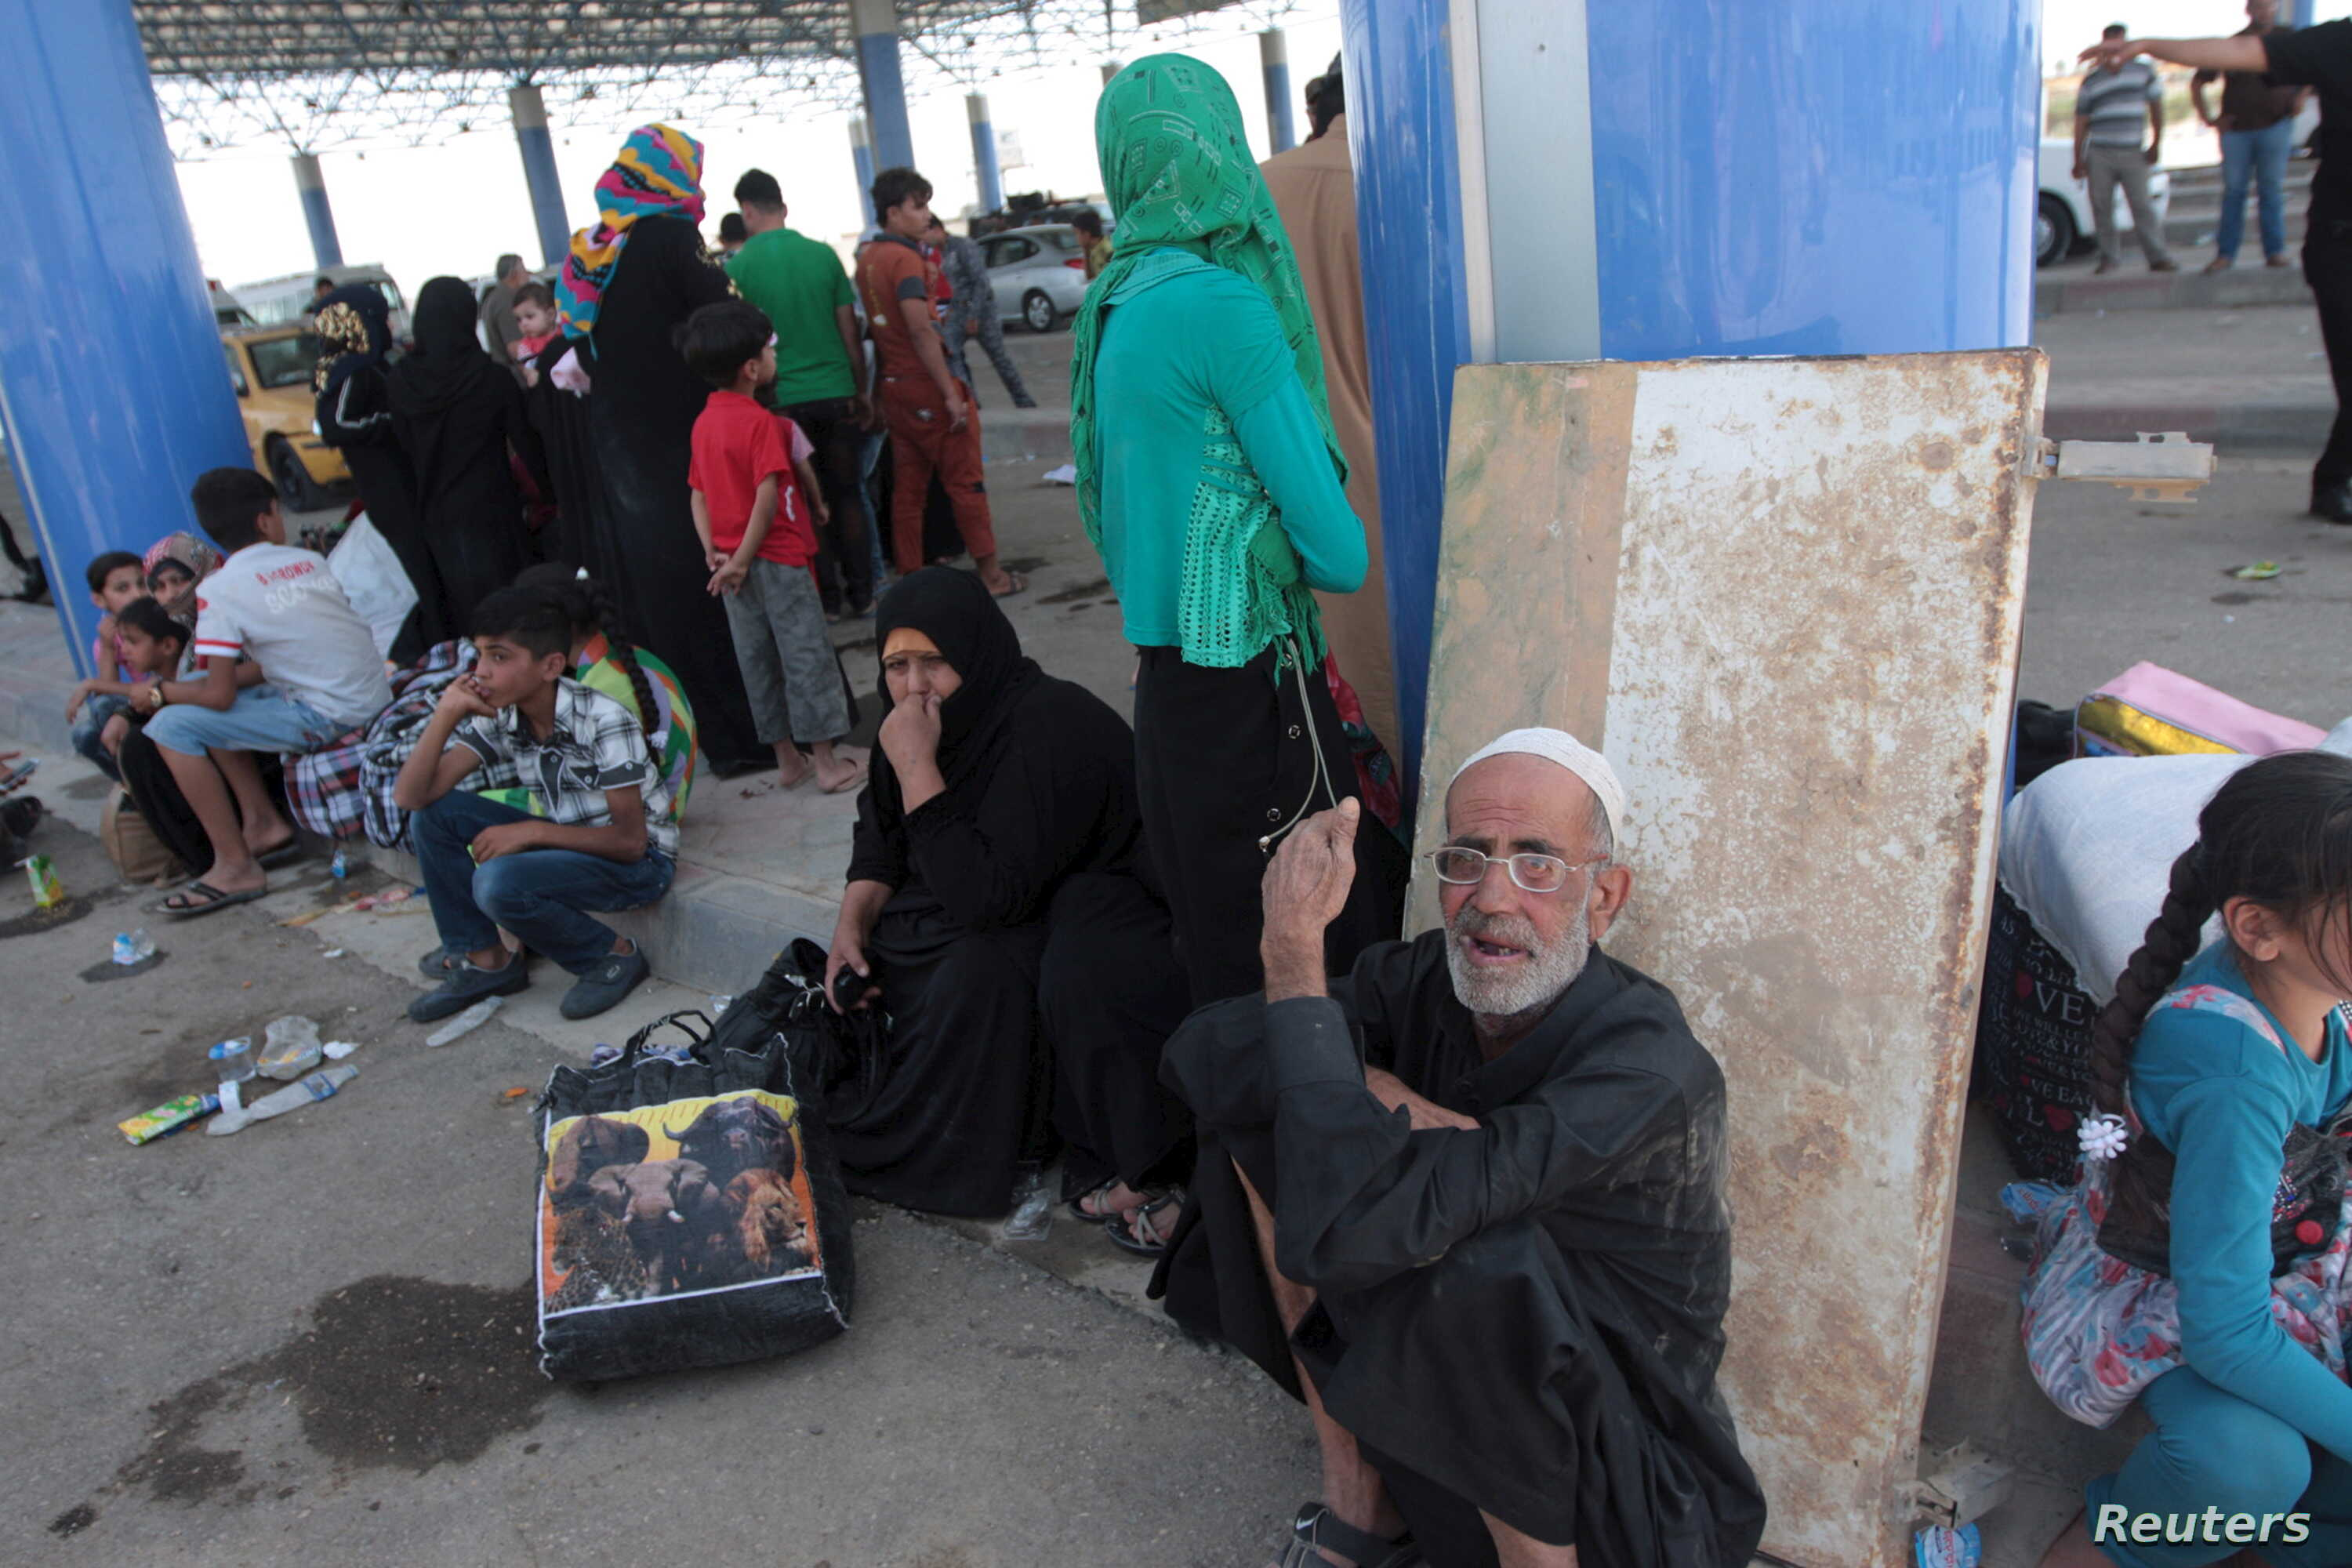 Displaced Sunni people fleeing the violence in the city of Ramadi arrive at the outskirts of Baghdad, May 19, 2015. Islamic State fighters who overran Ramadi in a major defeat for the Iraqi government and its Western backers tightened their grip on t...